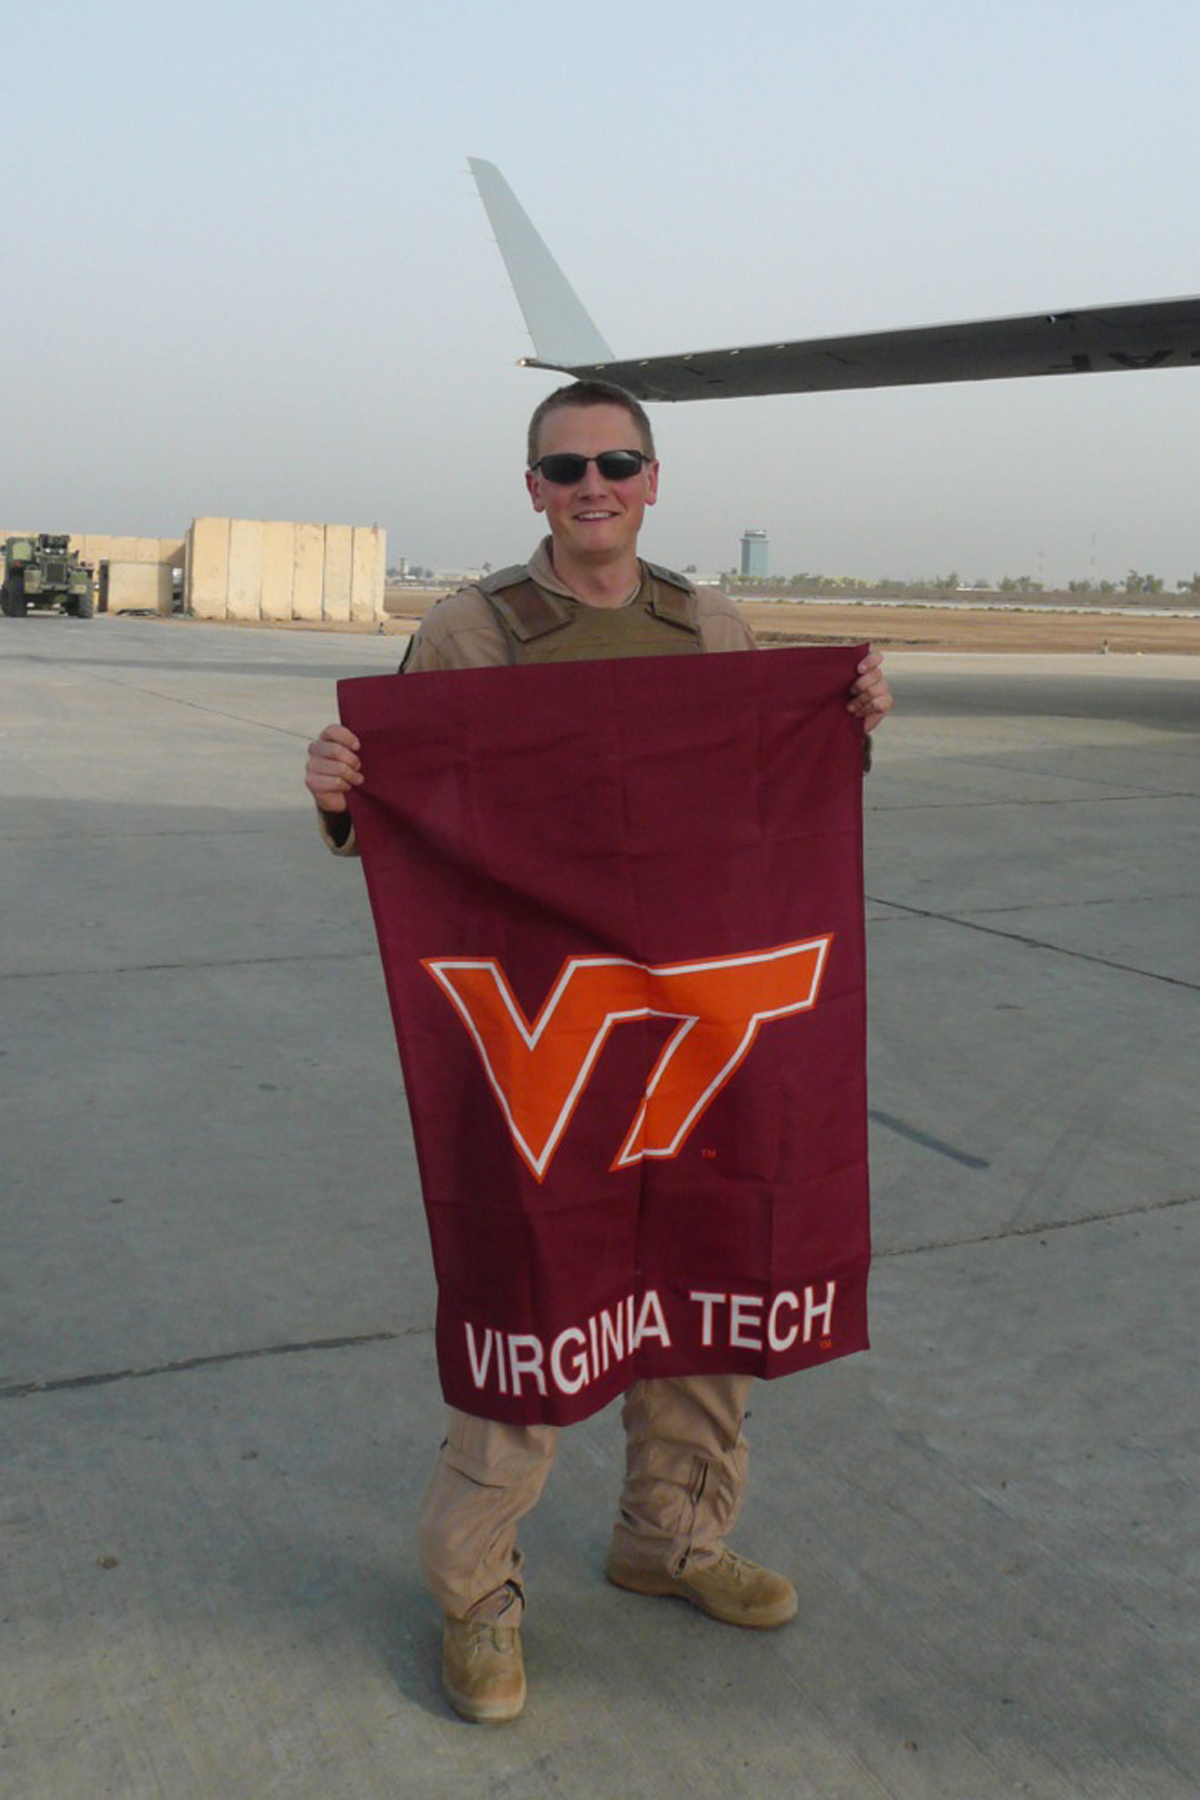 Capt. Timothy Goodwillie, U.S. Air Force, Virginia Tech Corps of Cadets Class of 2005 who is currently deployed to Southwest Asia